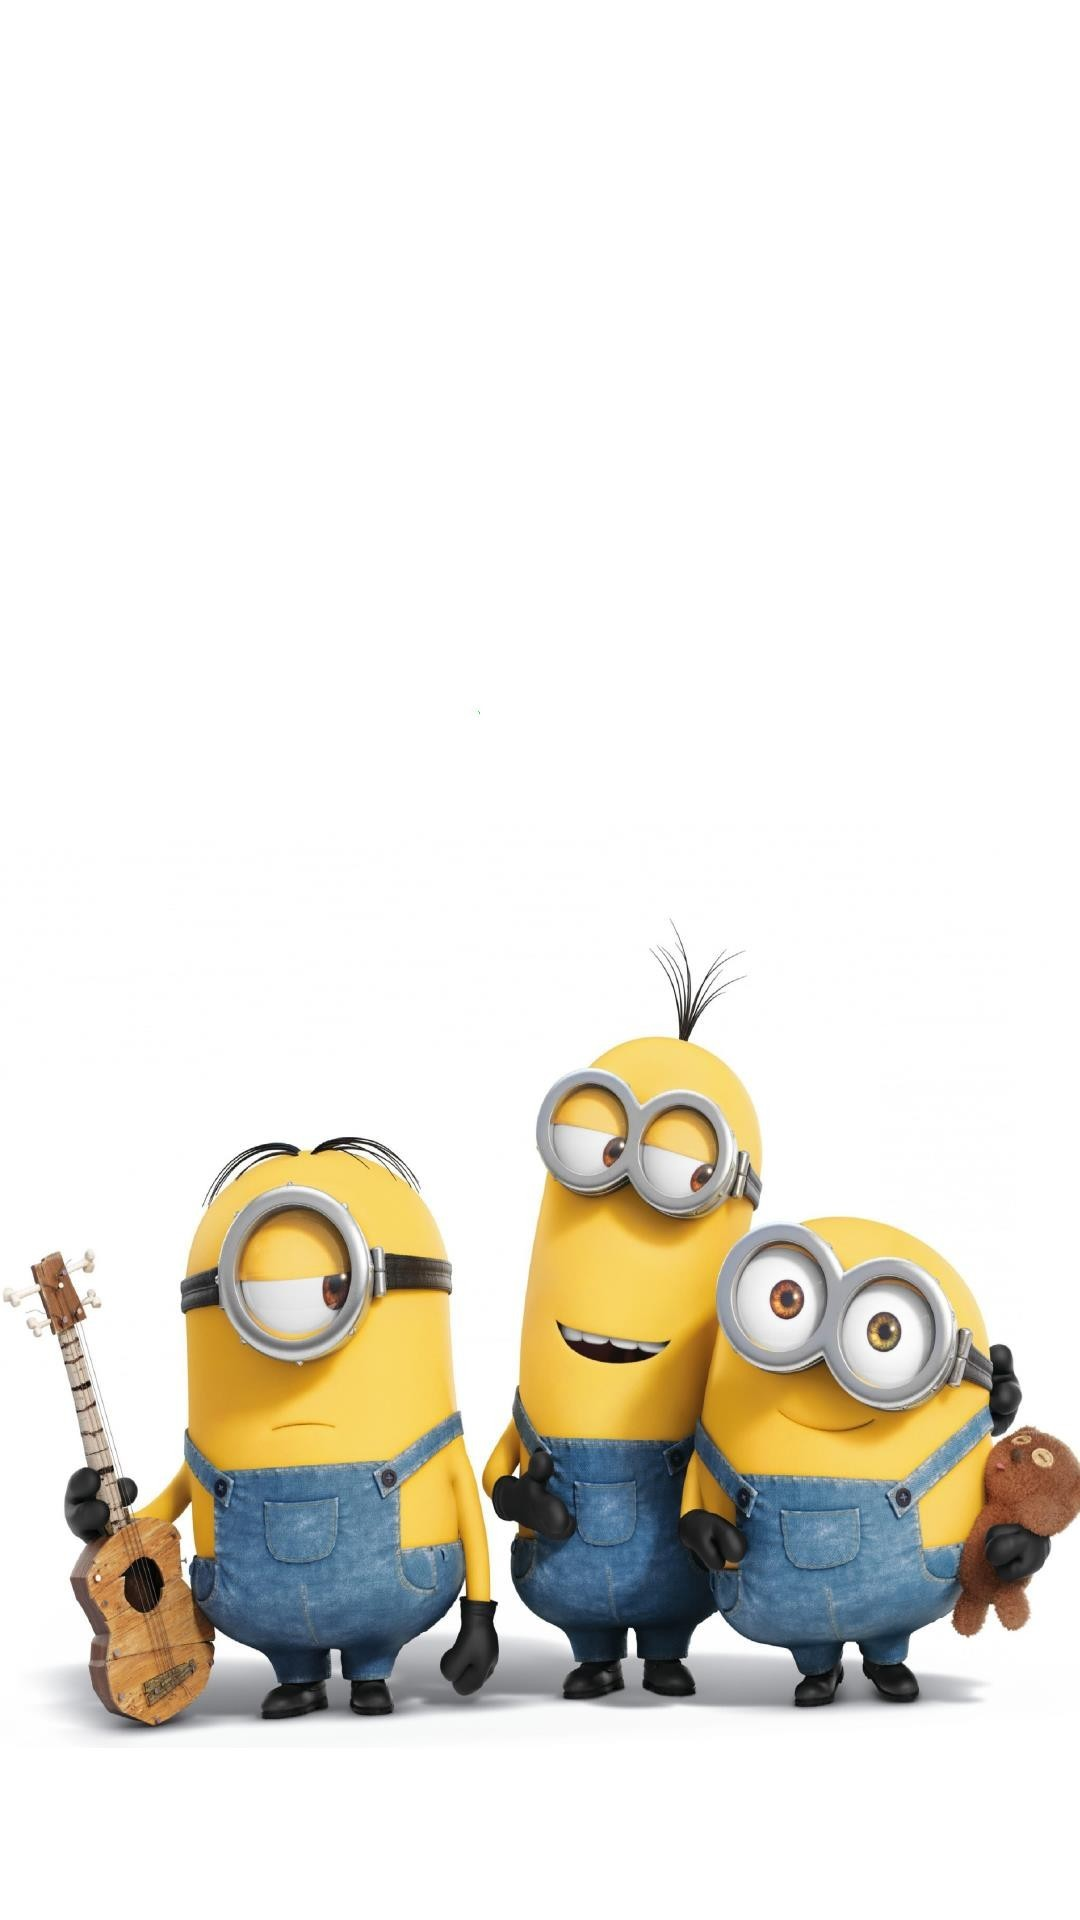 Res: 1080x1920, A collection of the best Minions wallpapers that you can use for your  background or screensaver. All of these Minions wallpapers are fun and free  to use.